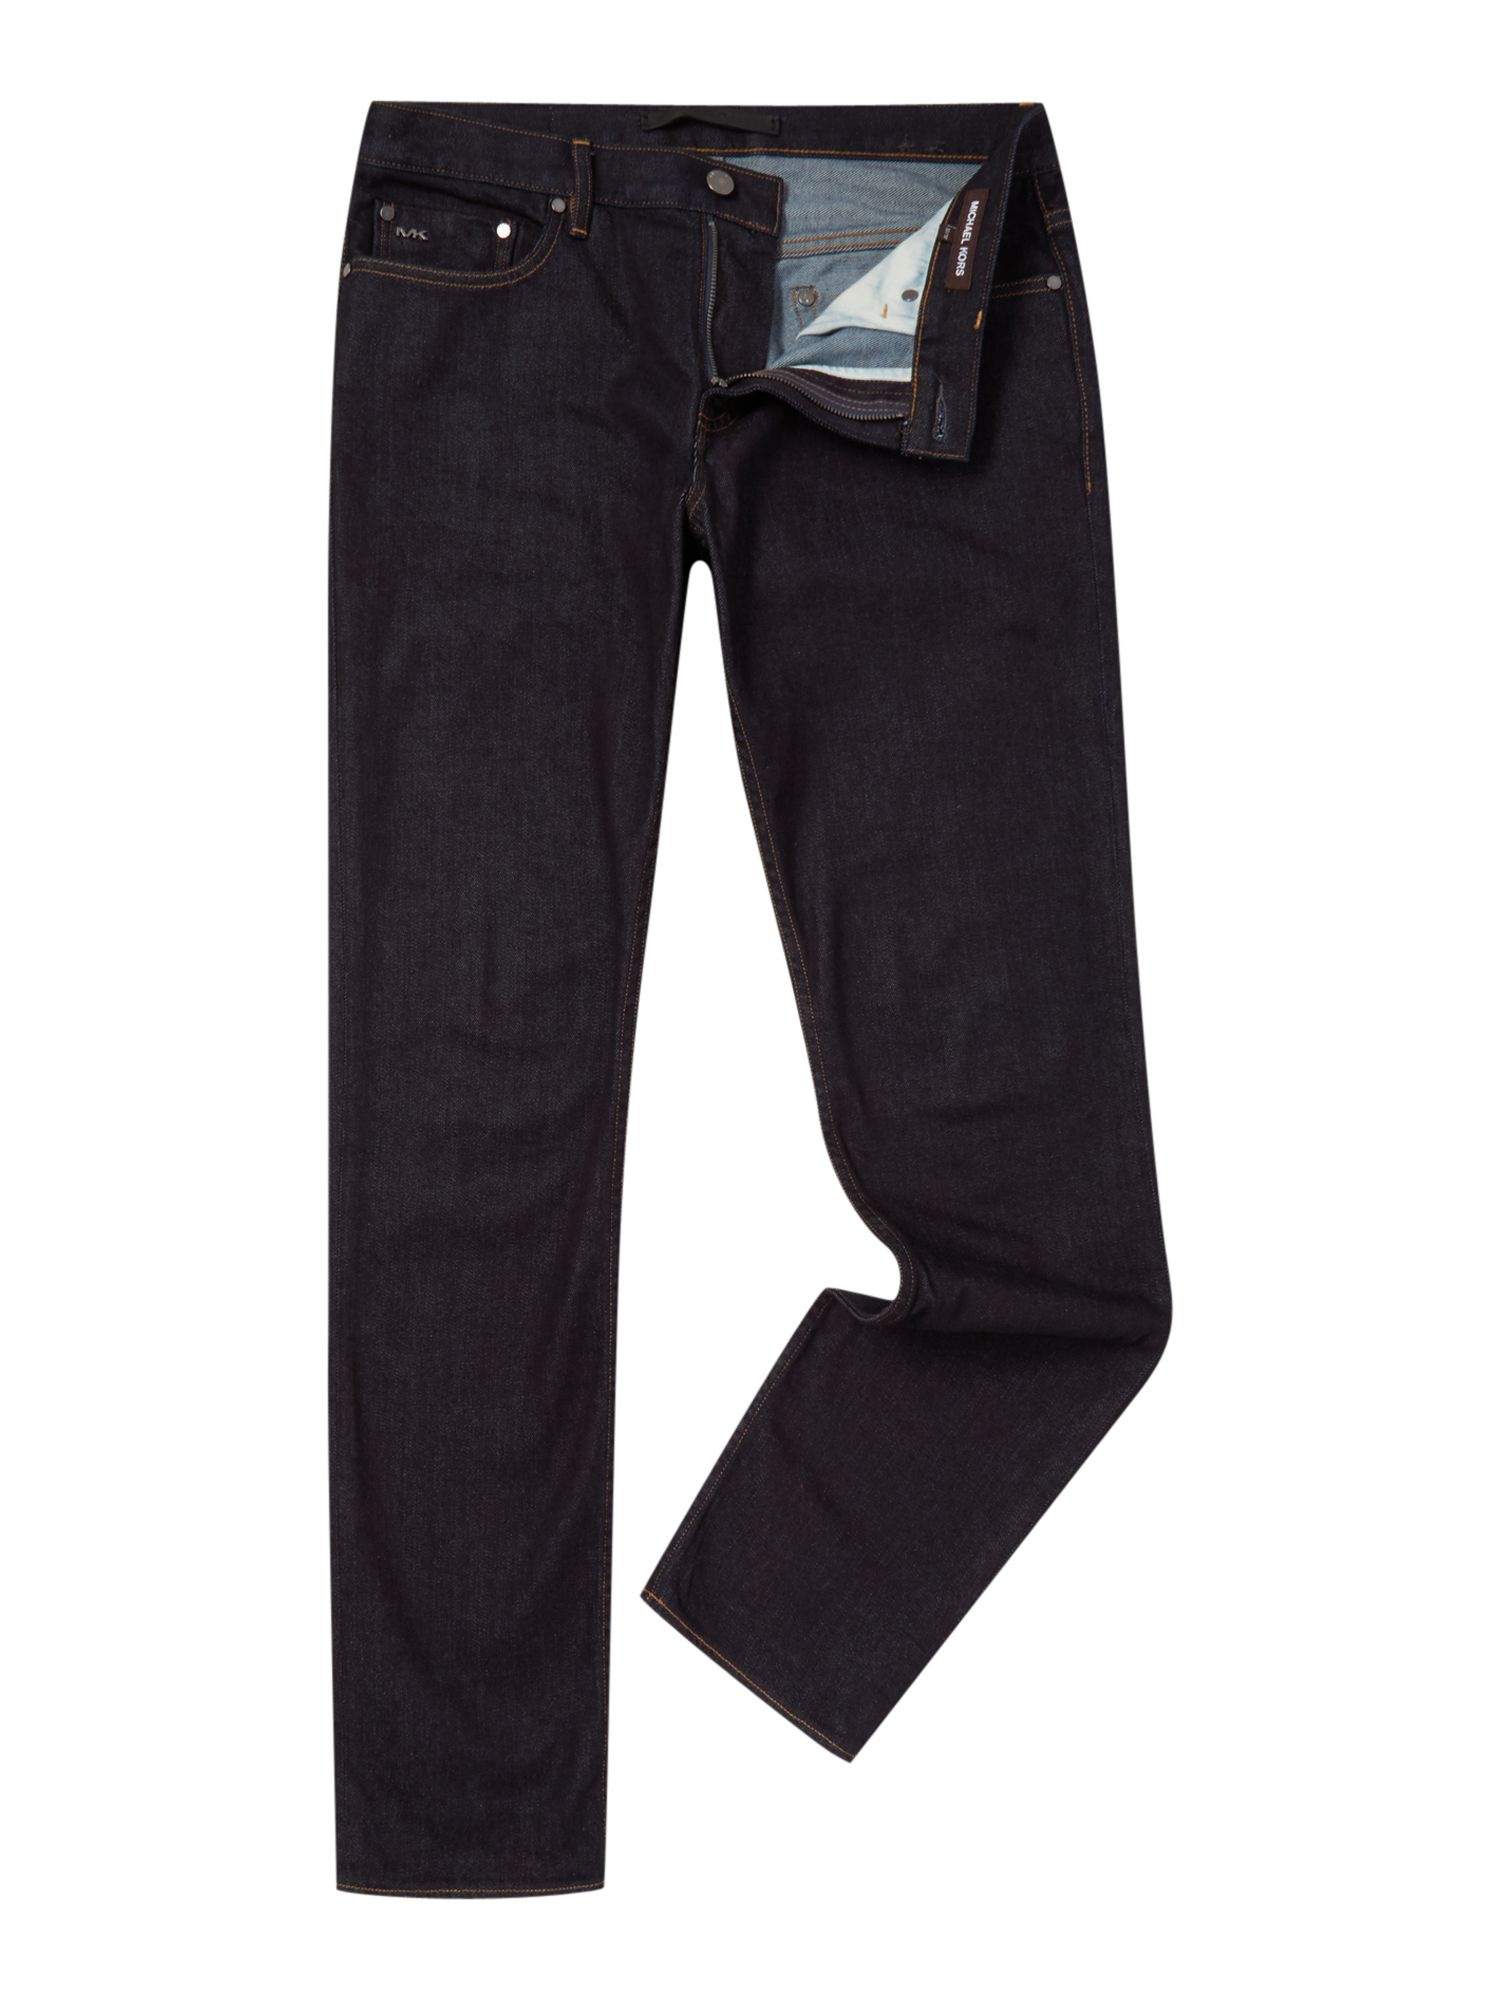 michael kors slim fit light indigo stretch jeans in blue for men lyst. Black Bedroom Furniture Sets. Home Design Ideas